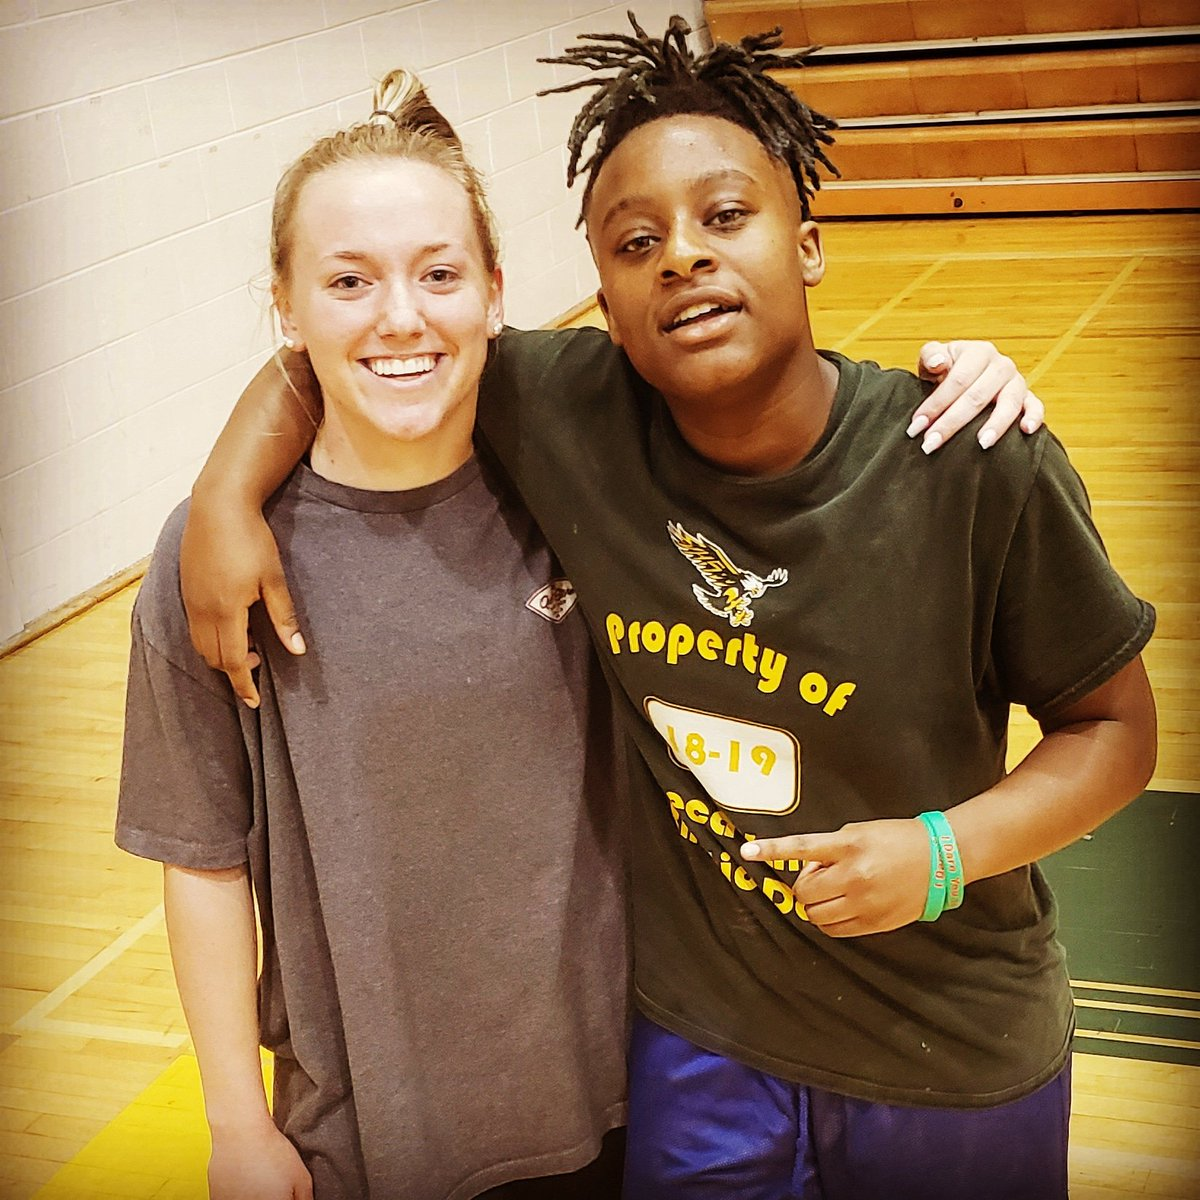 Rising seniors #1️⃣3️⃣ Hannah Himes and #1️⃣1️⃣ Jasia Oliver are 🔒'd in, focused, and ready to work this upcoming 🏀 season‼#svgbb #basketball #moco #support #positive #RT #svhs #family #team #work #gameday #seniorszn #share #mcps #grindseason